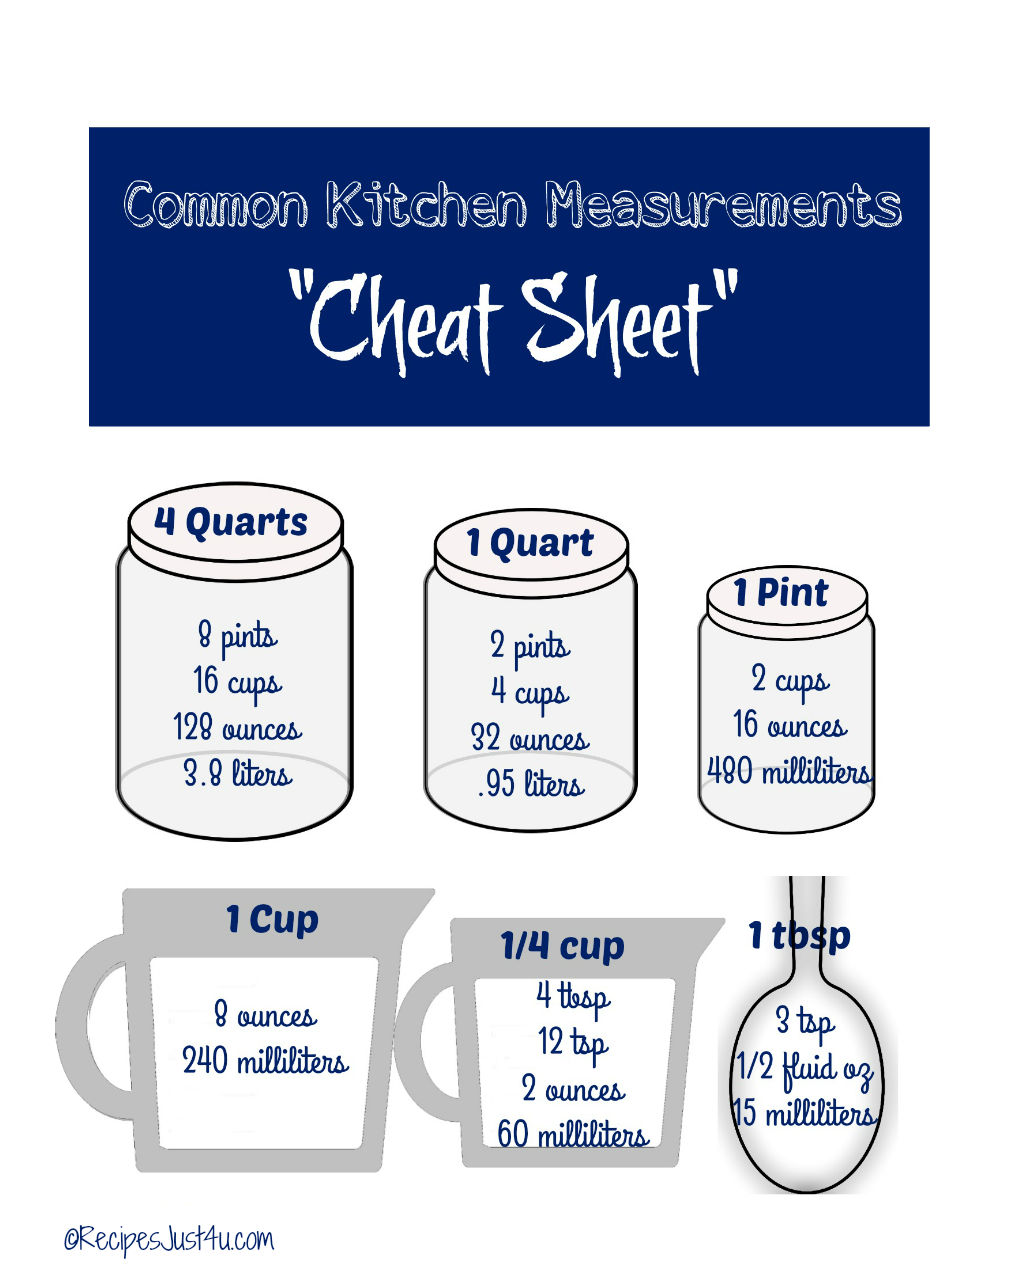 meauring cups and jars with measurement conversions and text reading common kitchen conversions